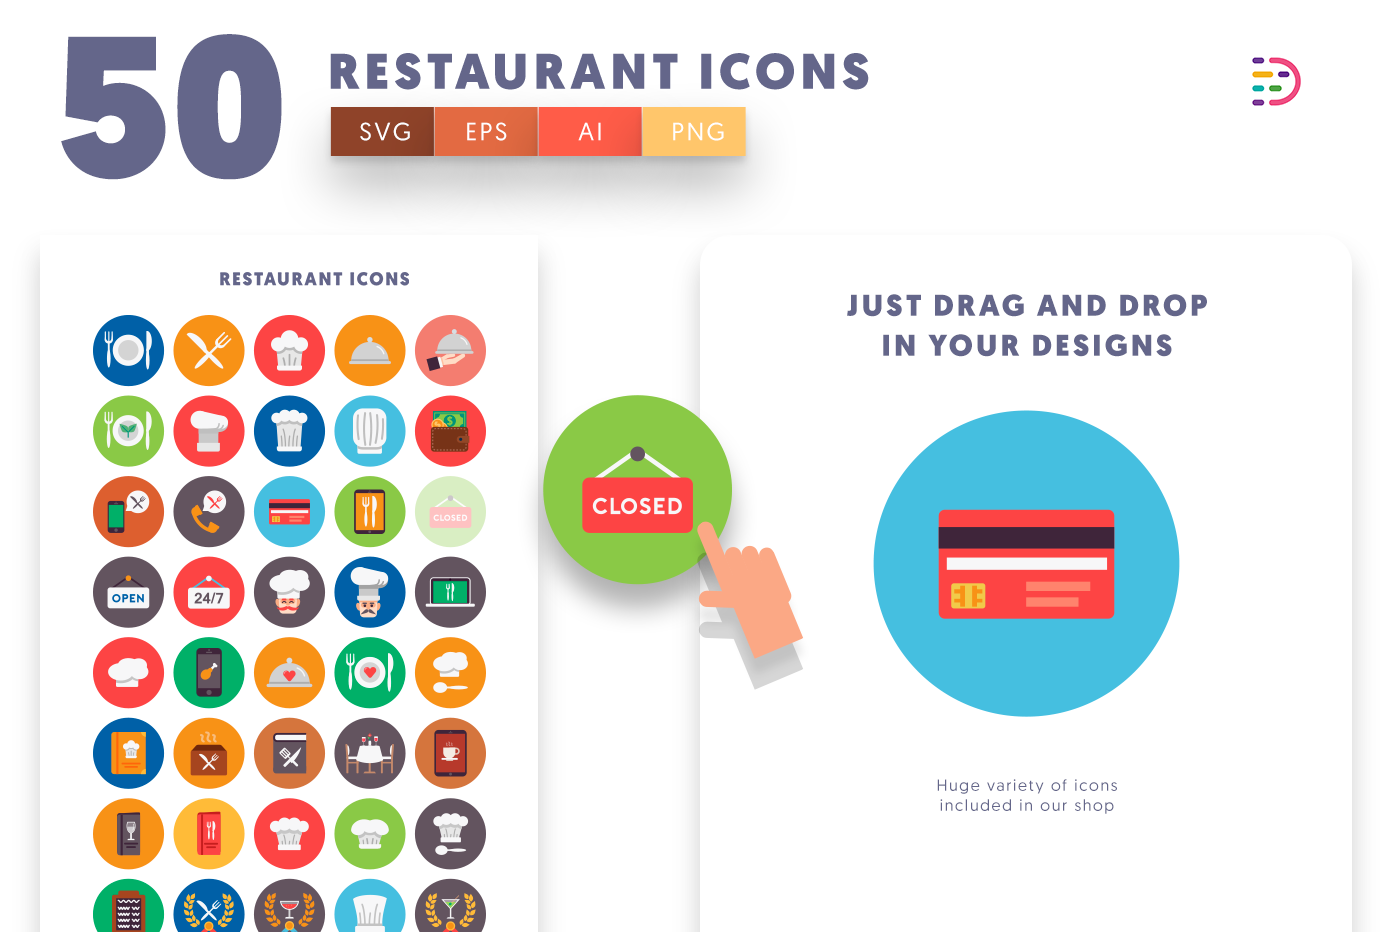 Drag and drop vector 50 Restaurant Icons